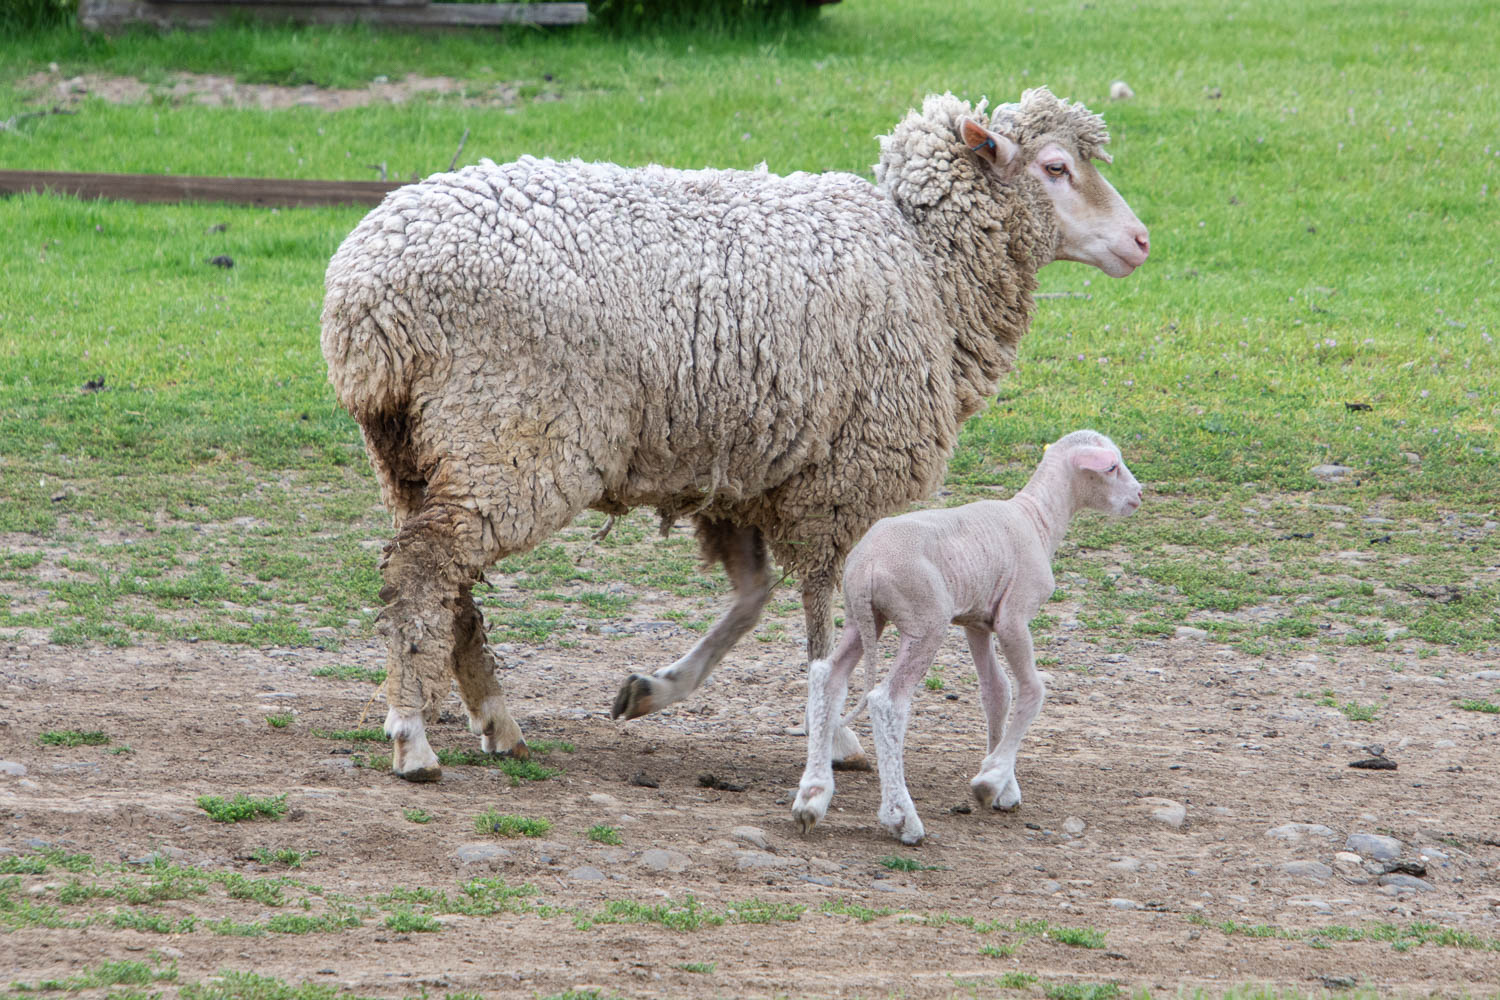 Ewe with new lamb.